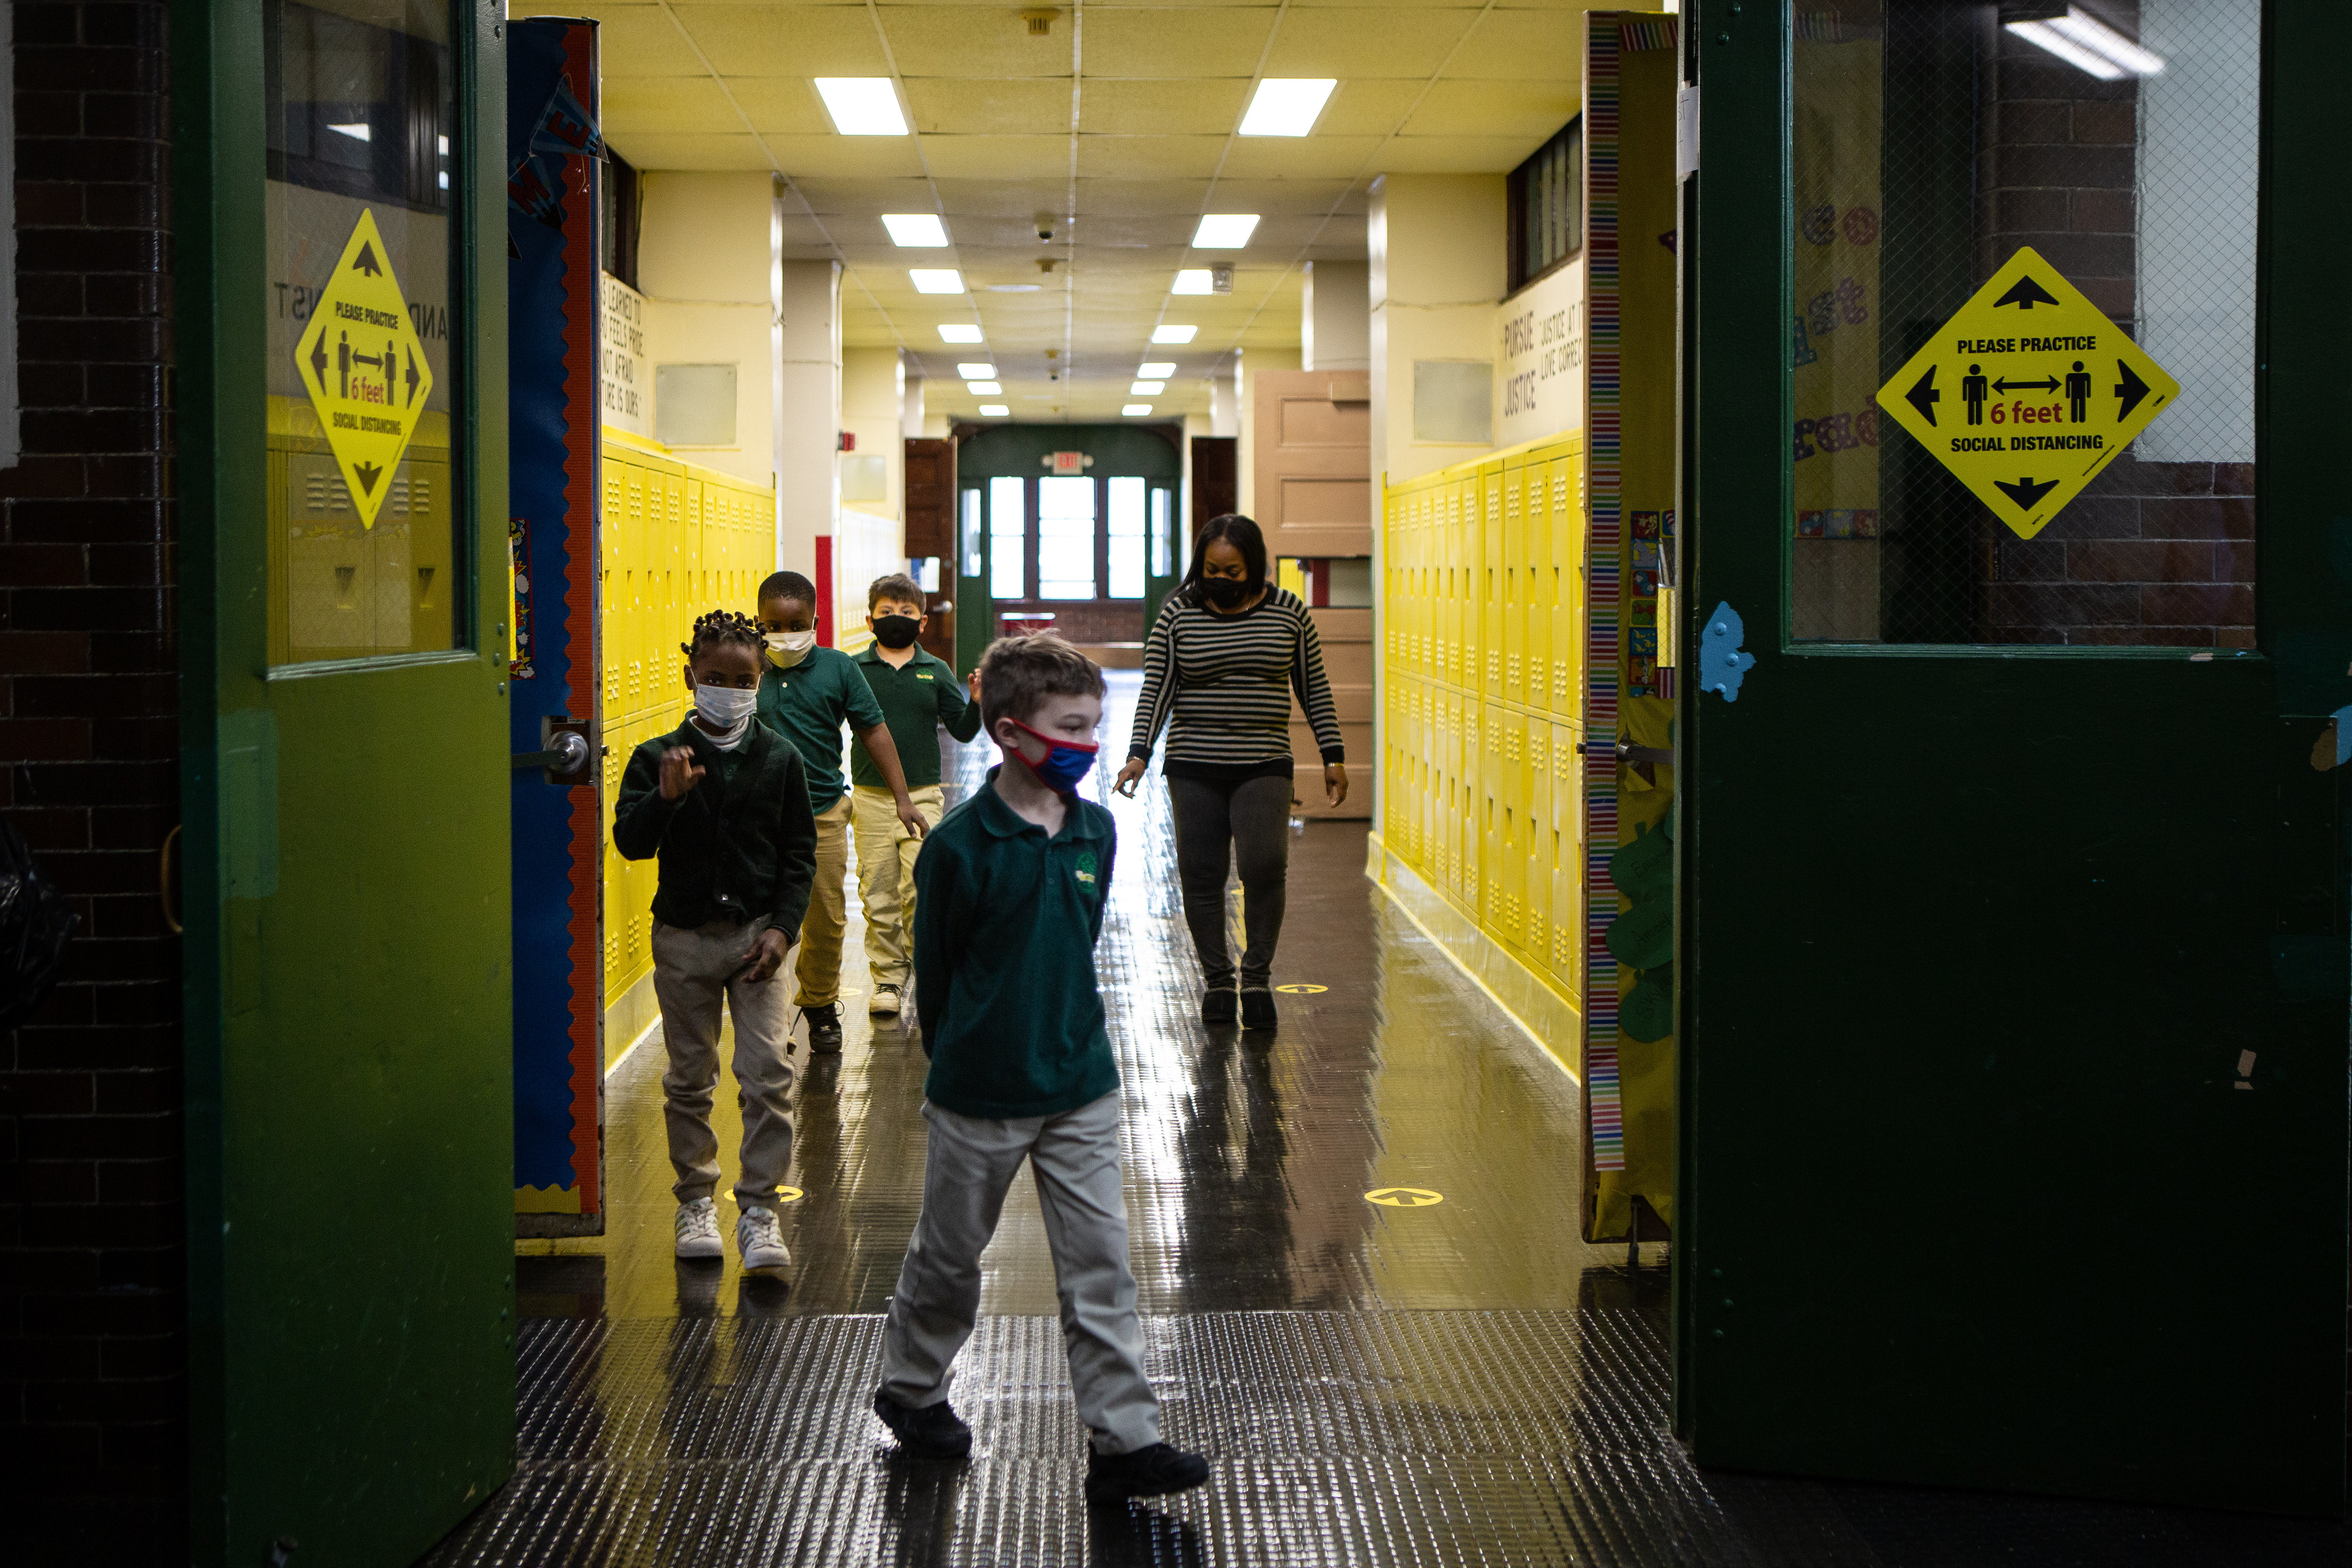 Students walk through the hall at Roseville Community Charter school in Newark, N.J.